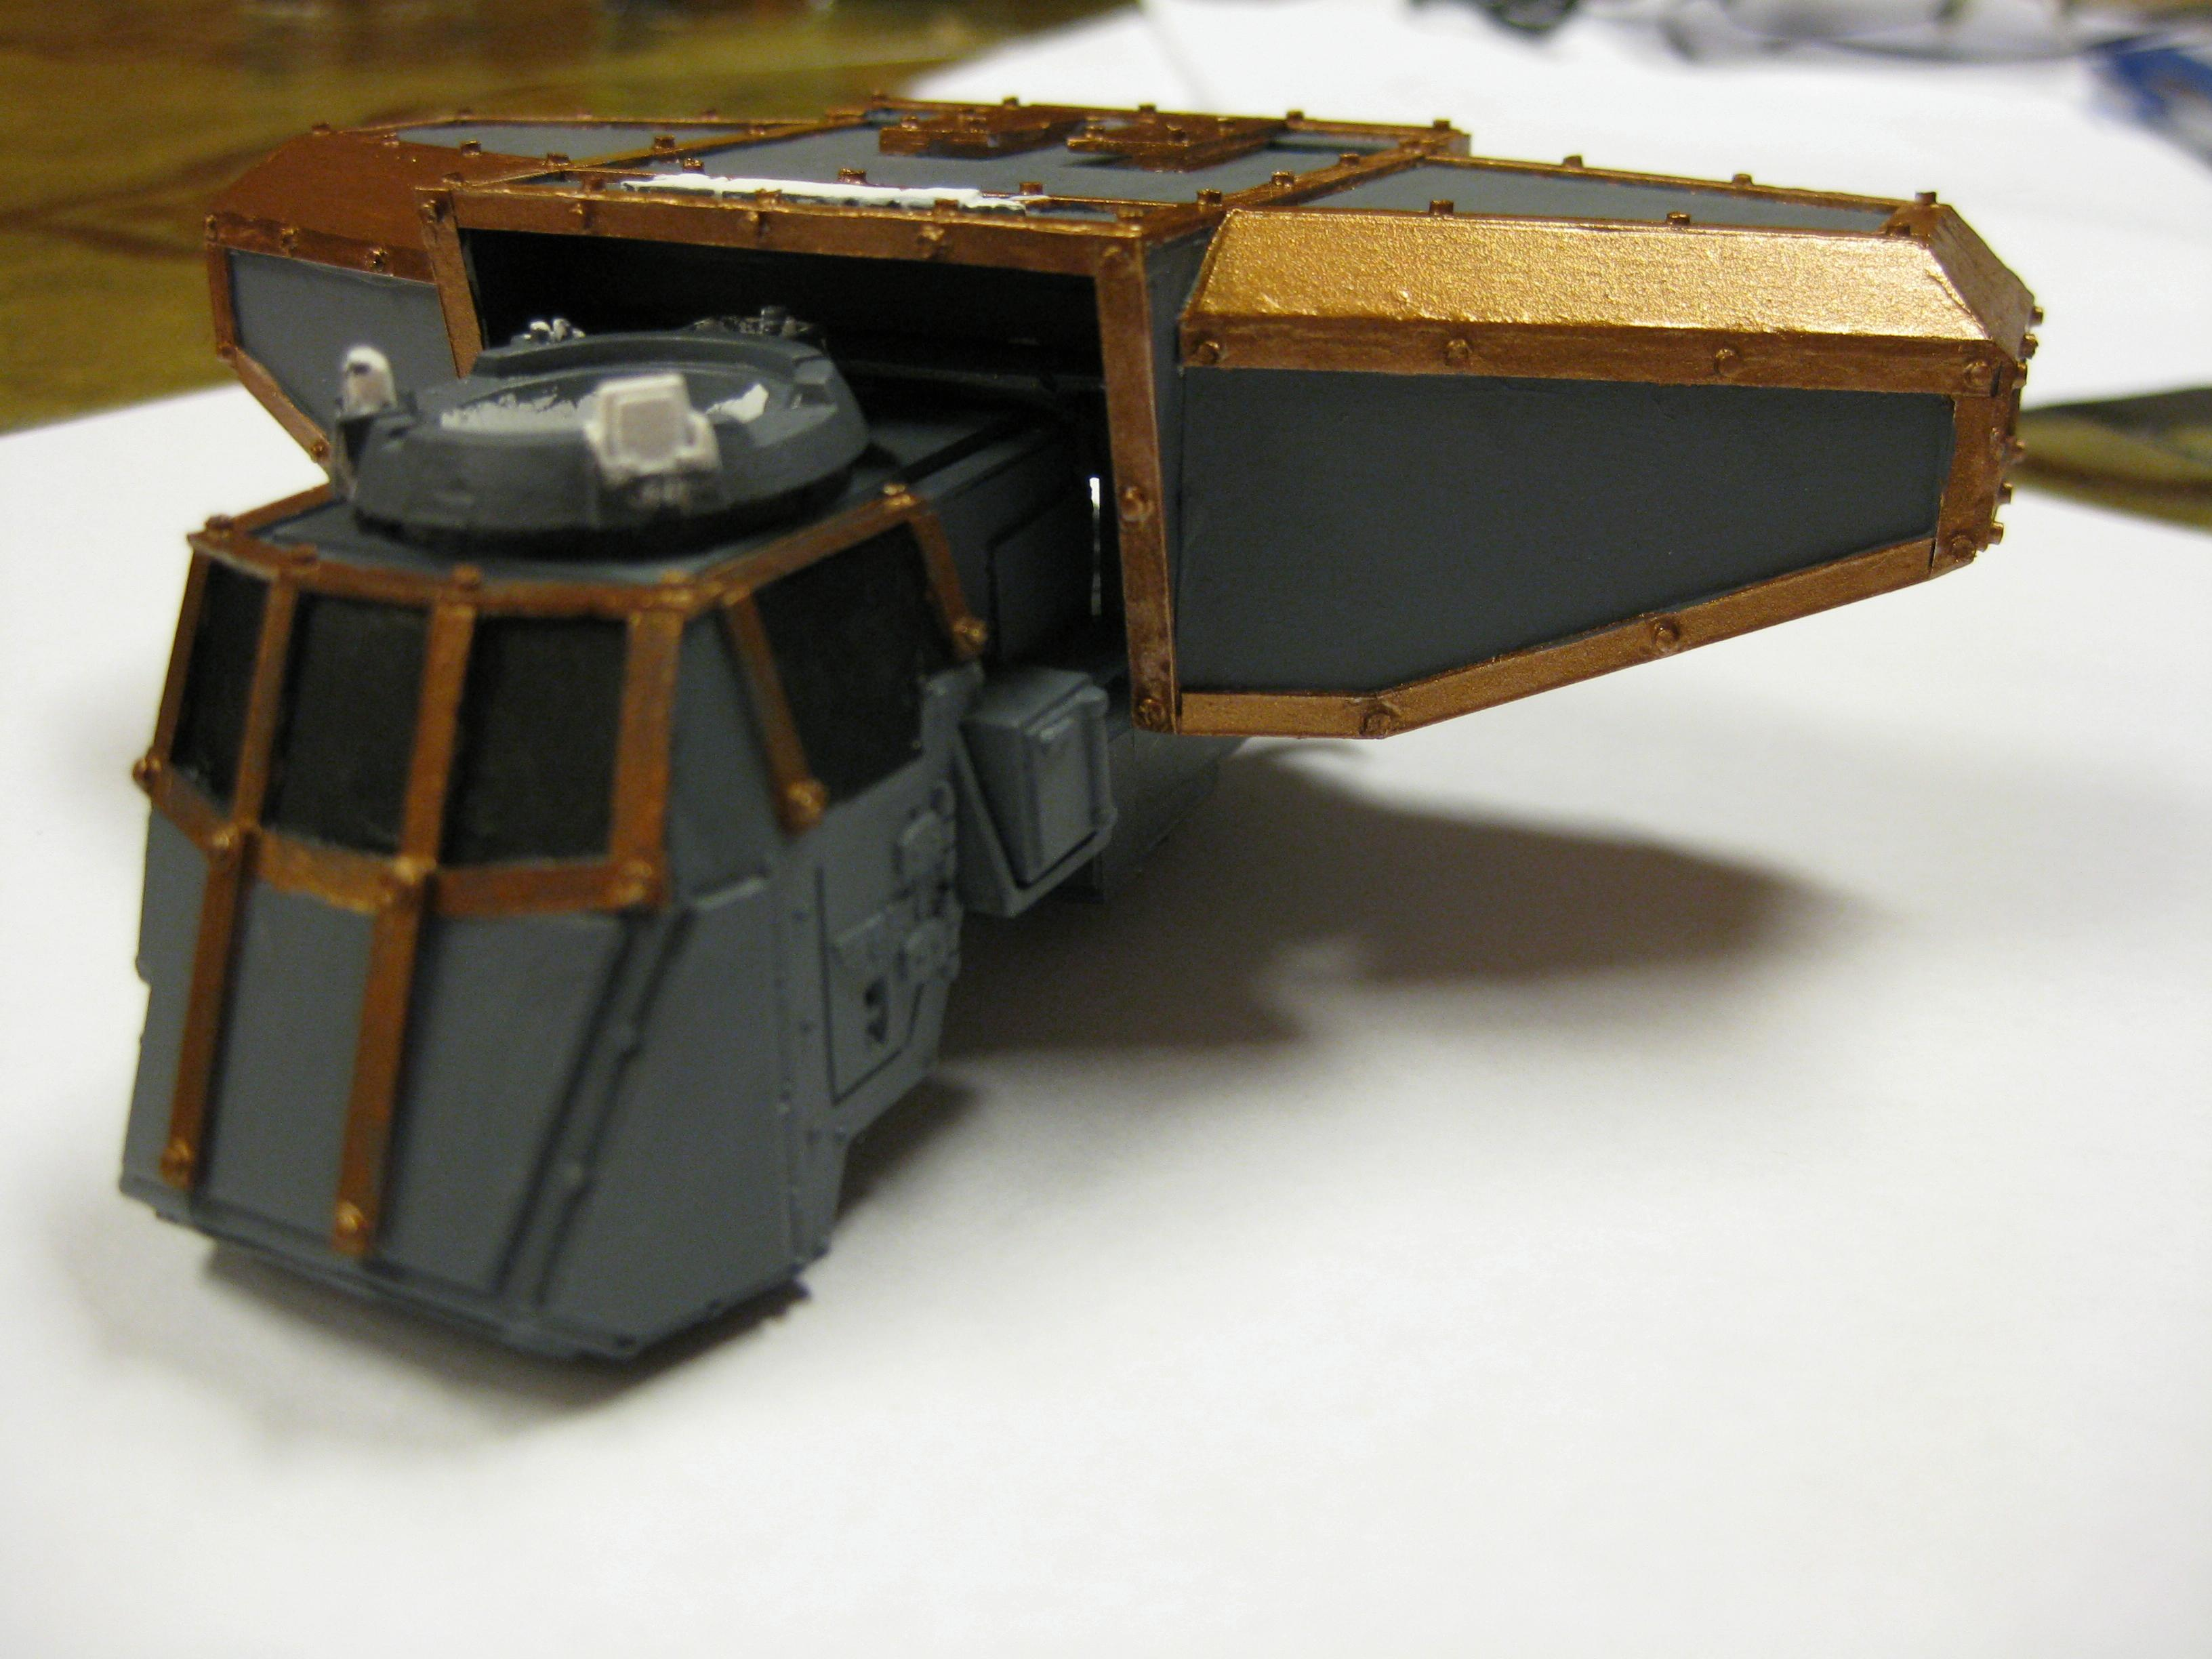 Another shot of the carapace